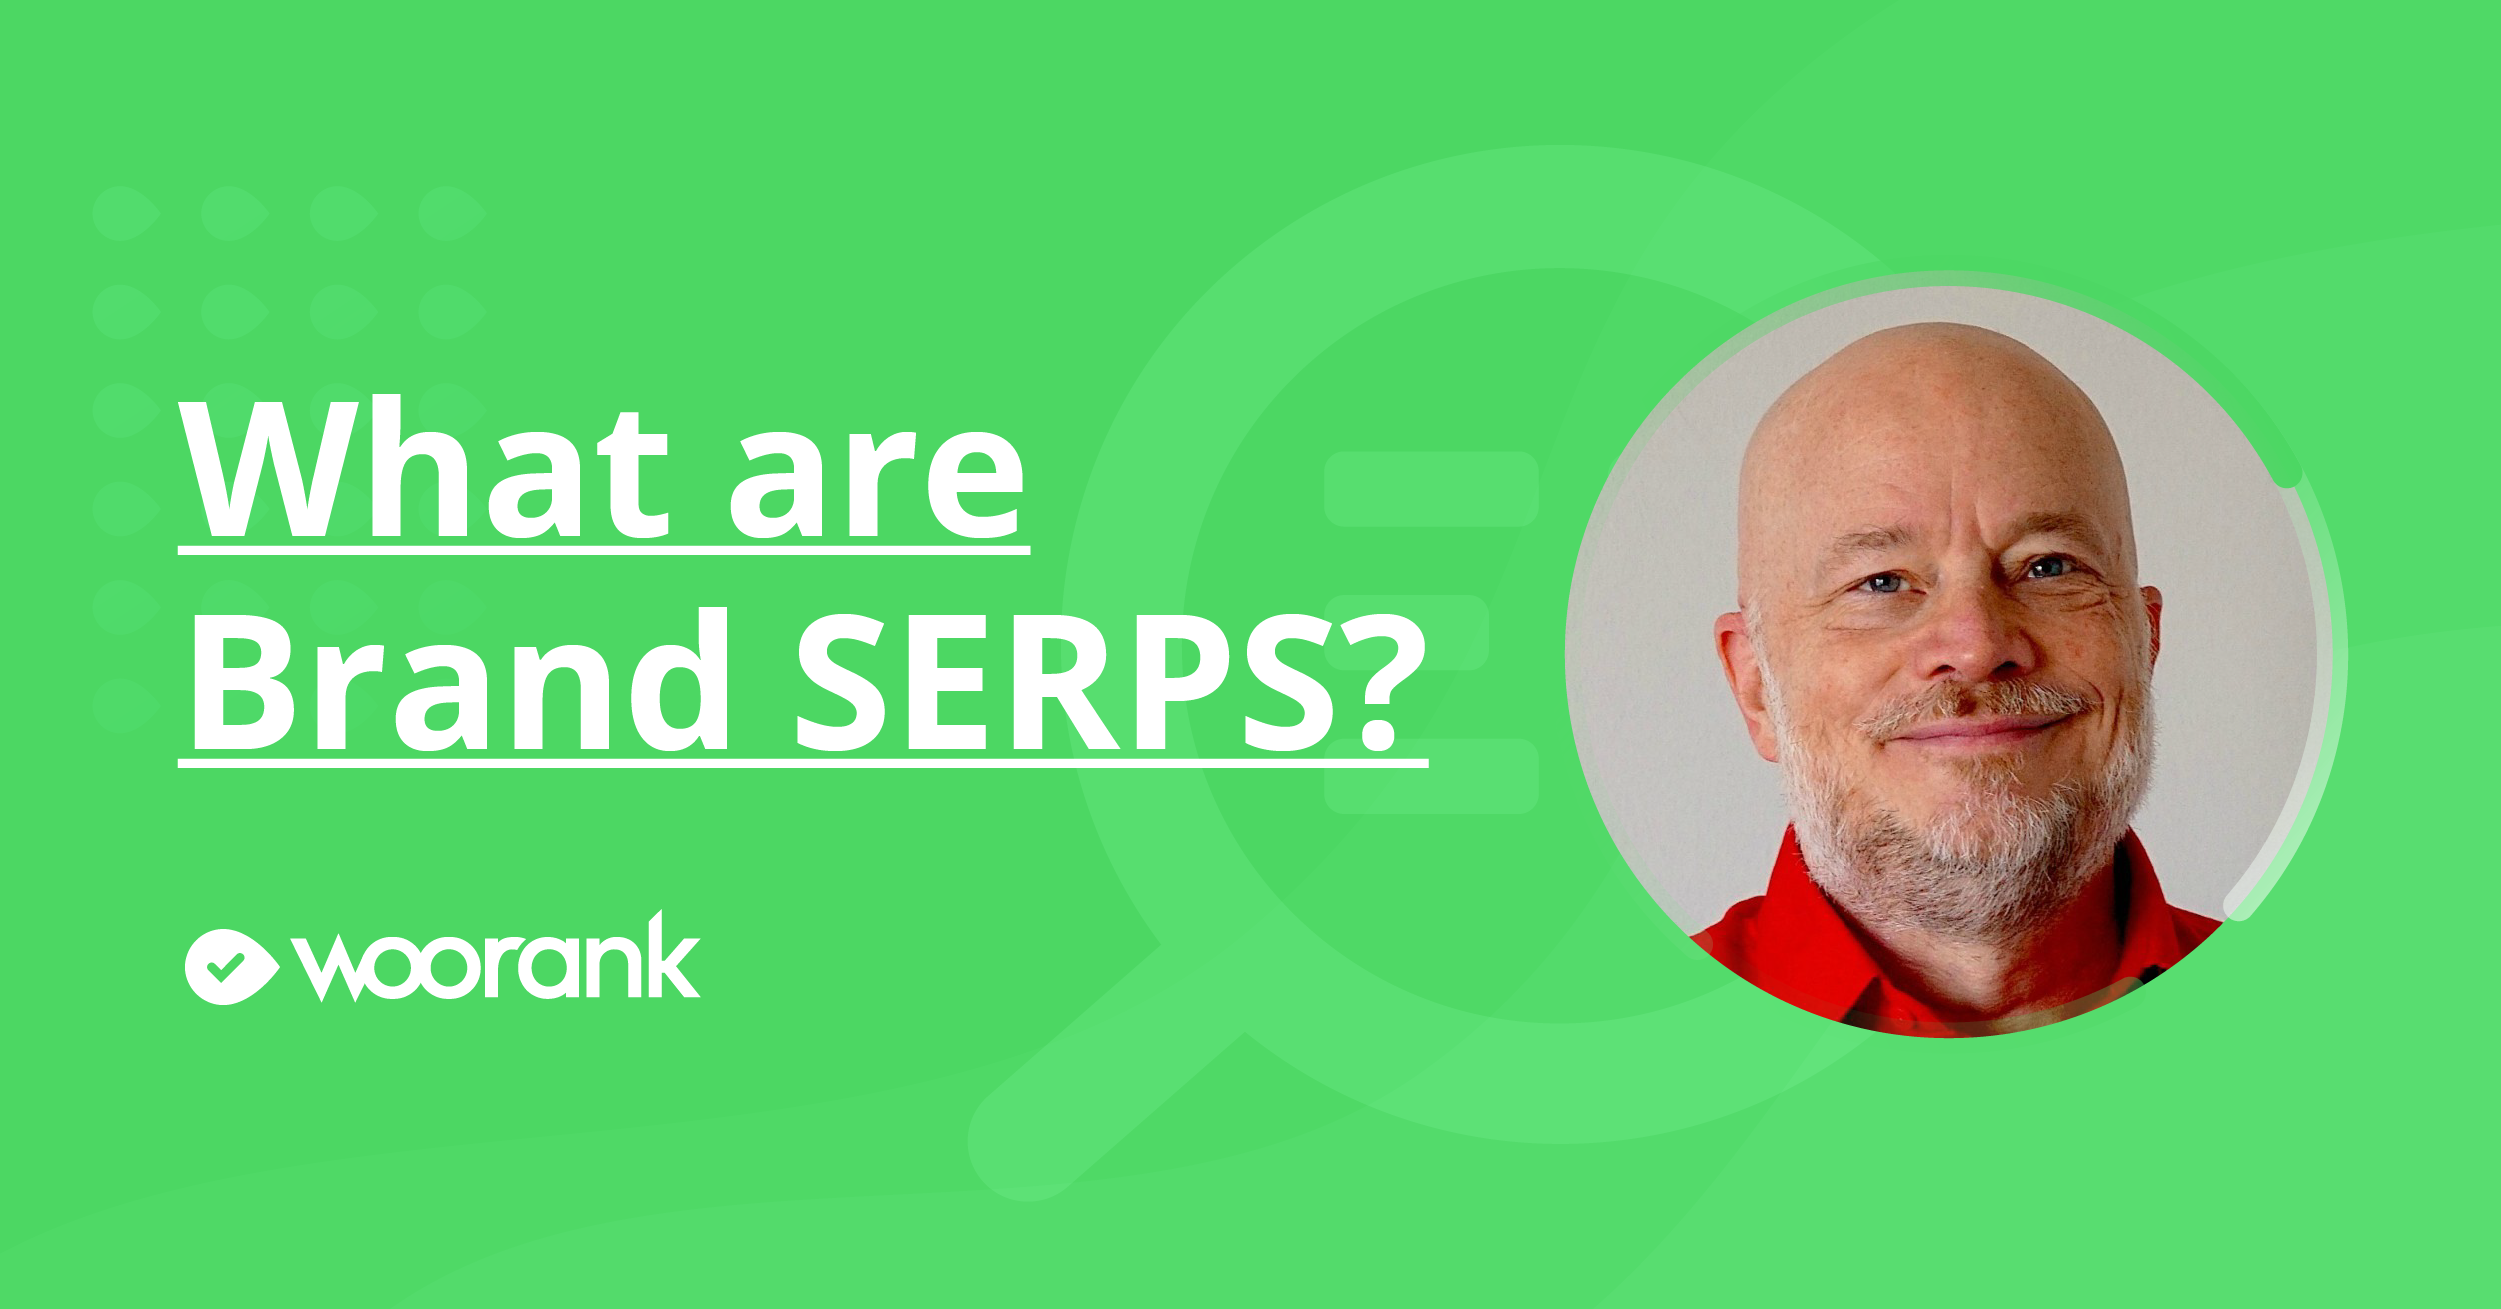 What are Brand SERPS?